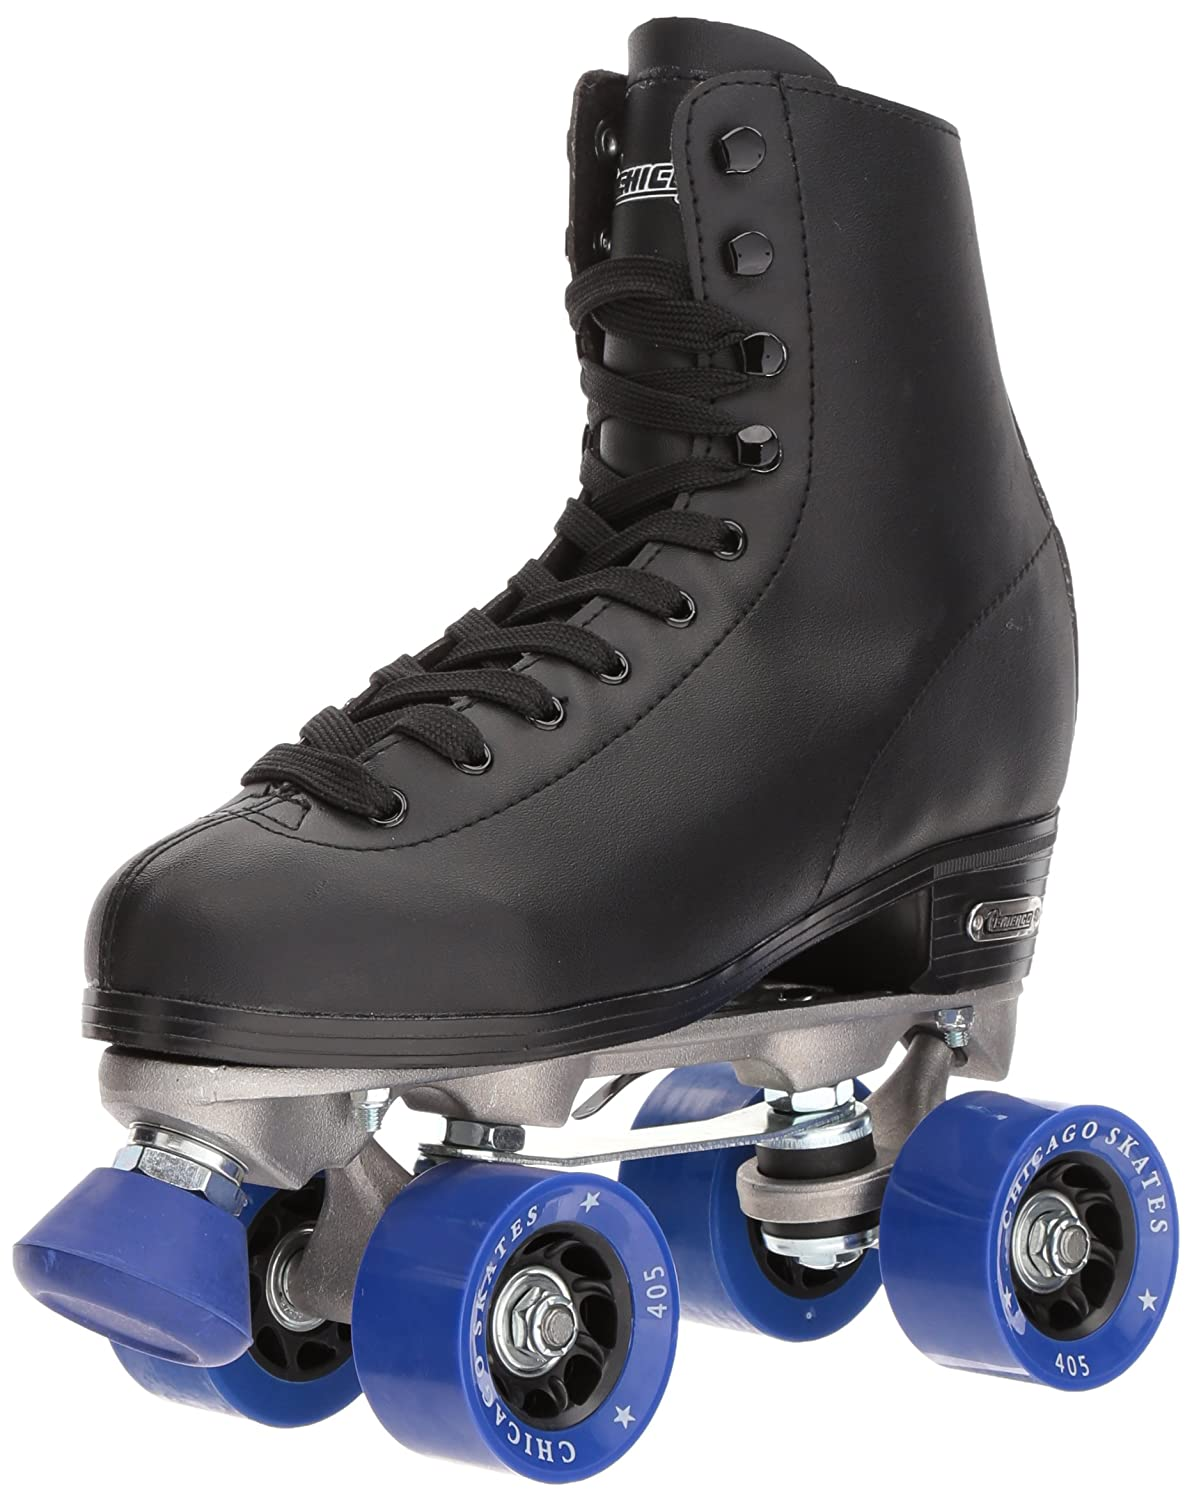 Chicago Men's Roller Rink Skates